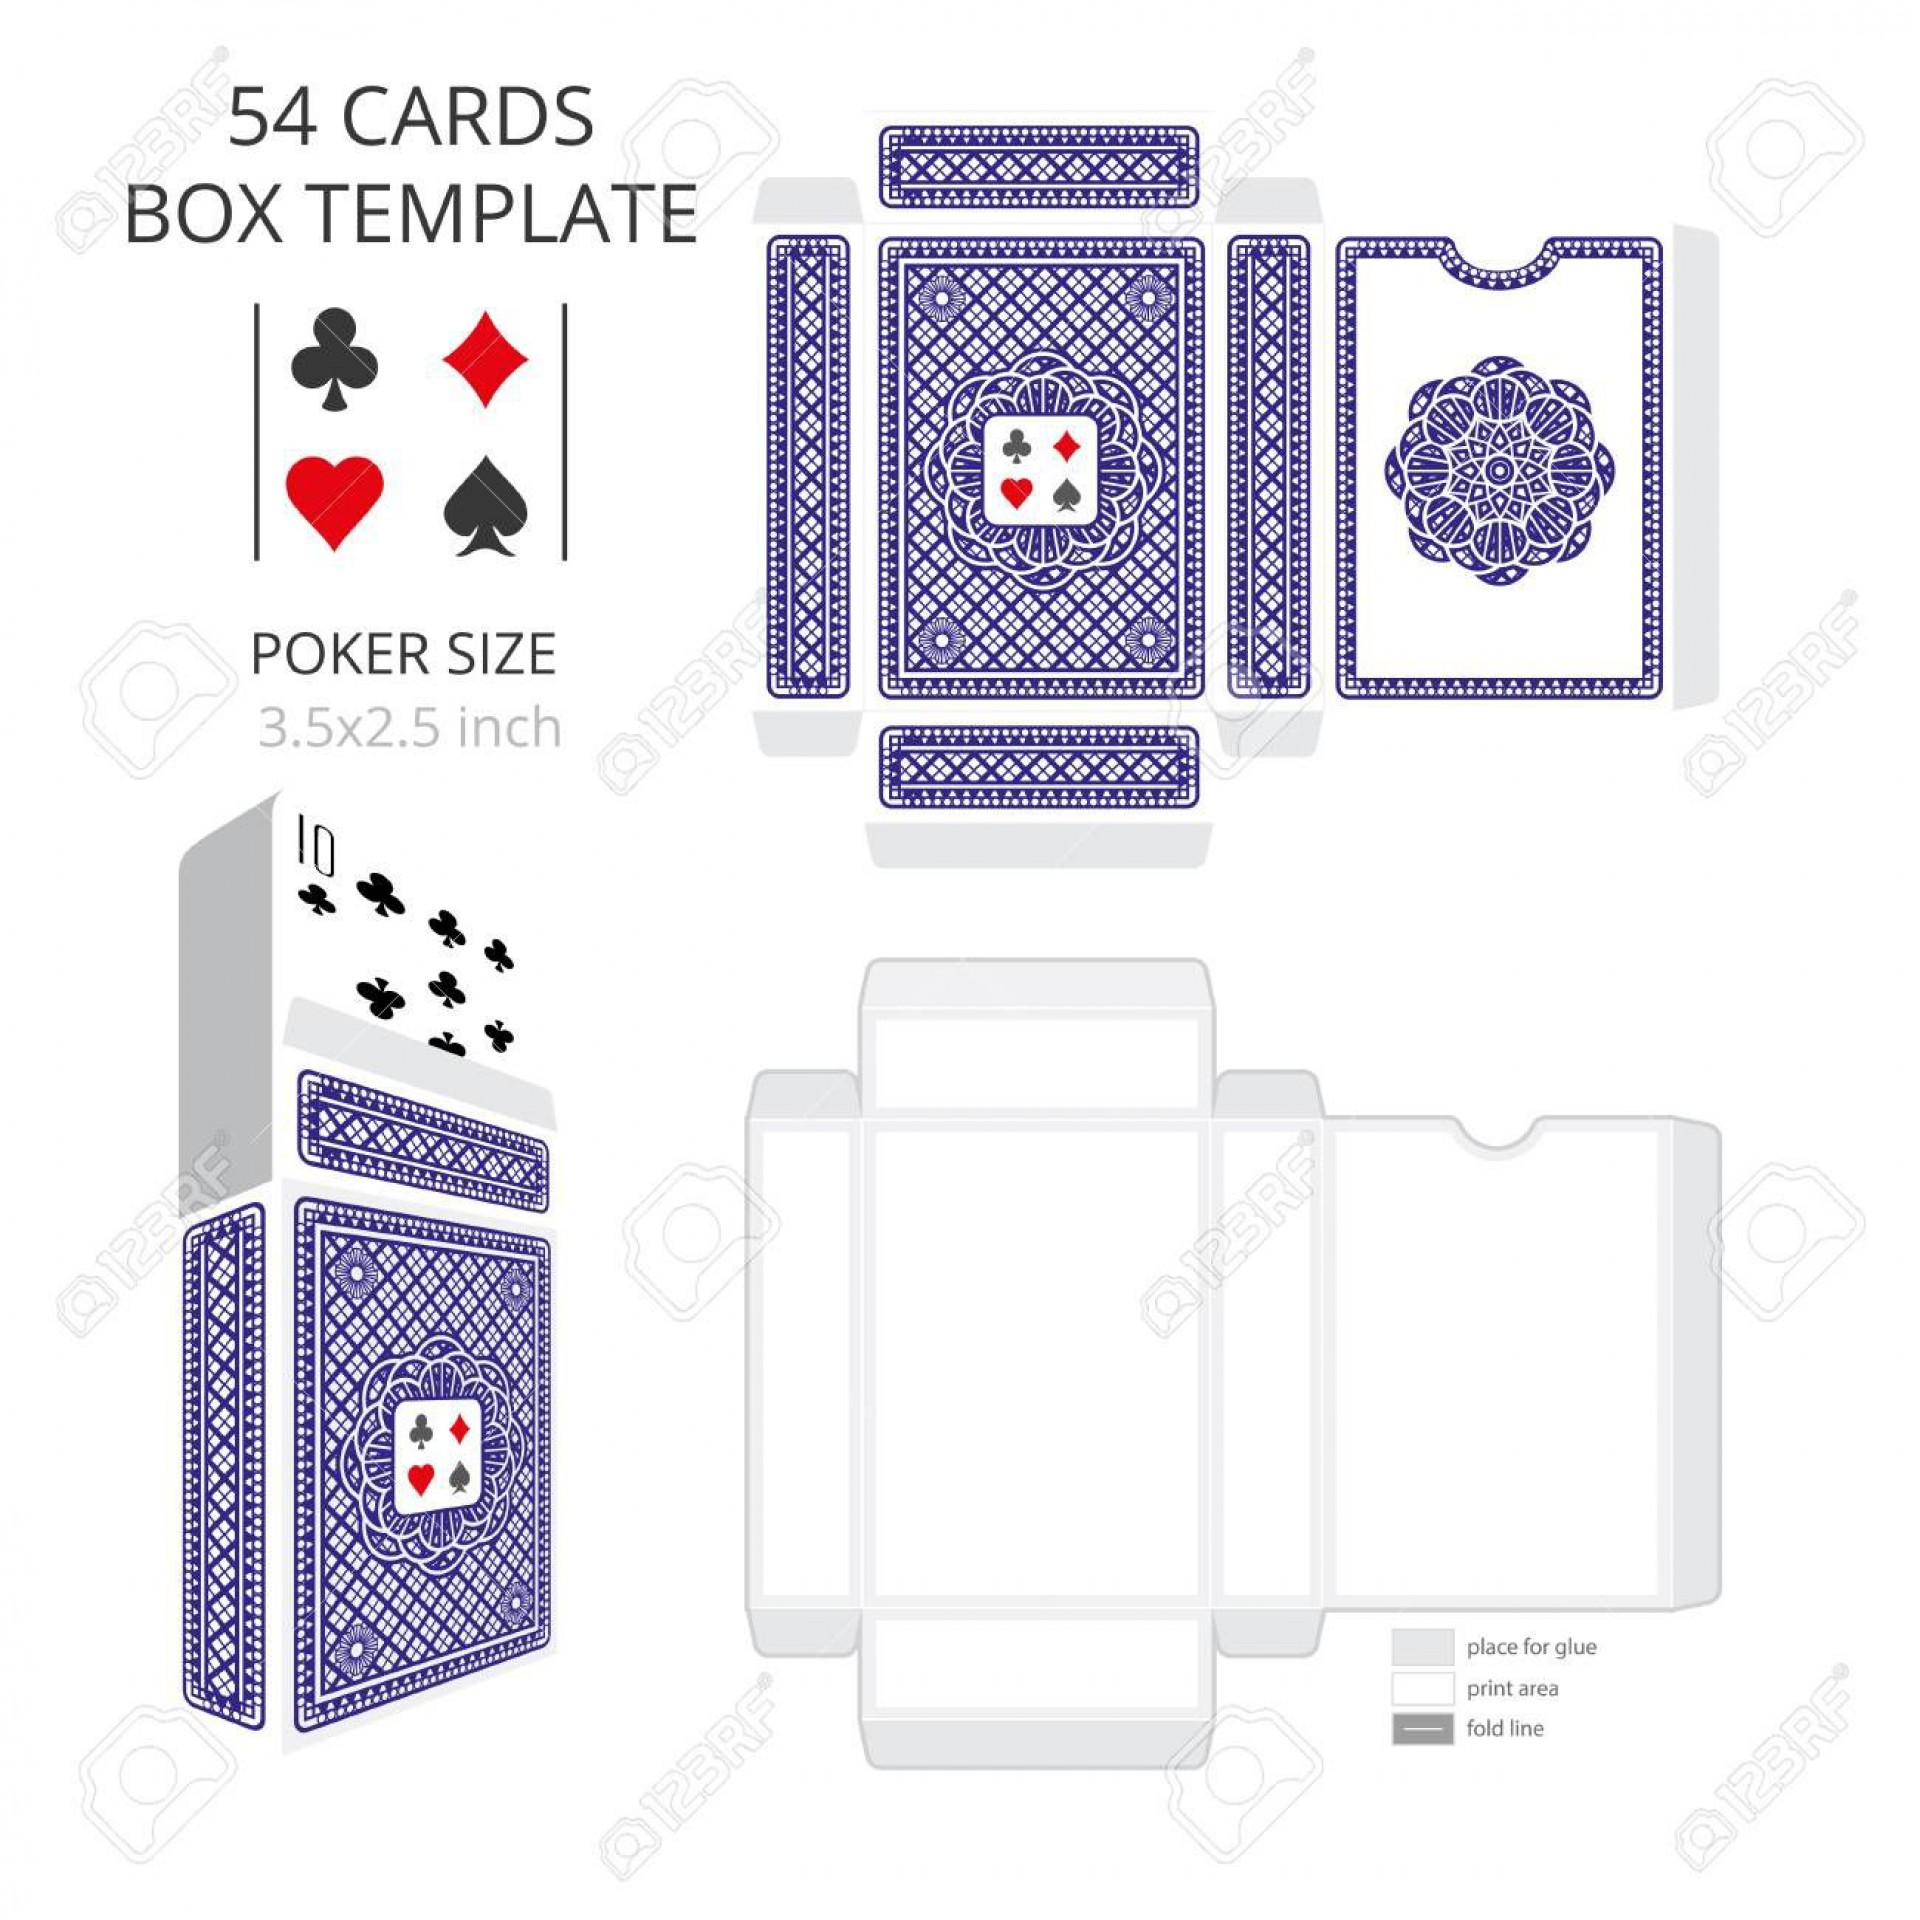 003 Stunning Playing Card Size Template High Definition  Standard Poker1920